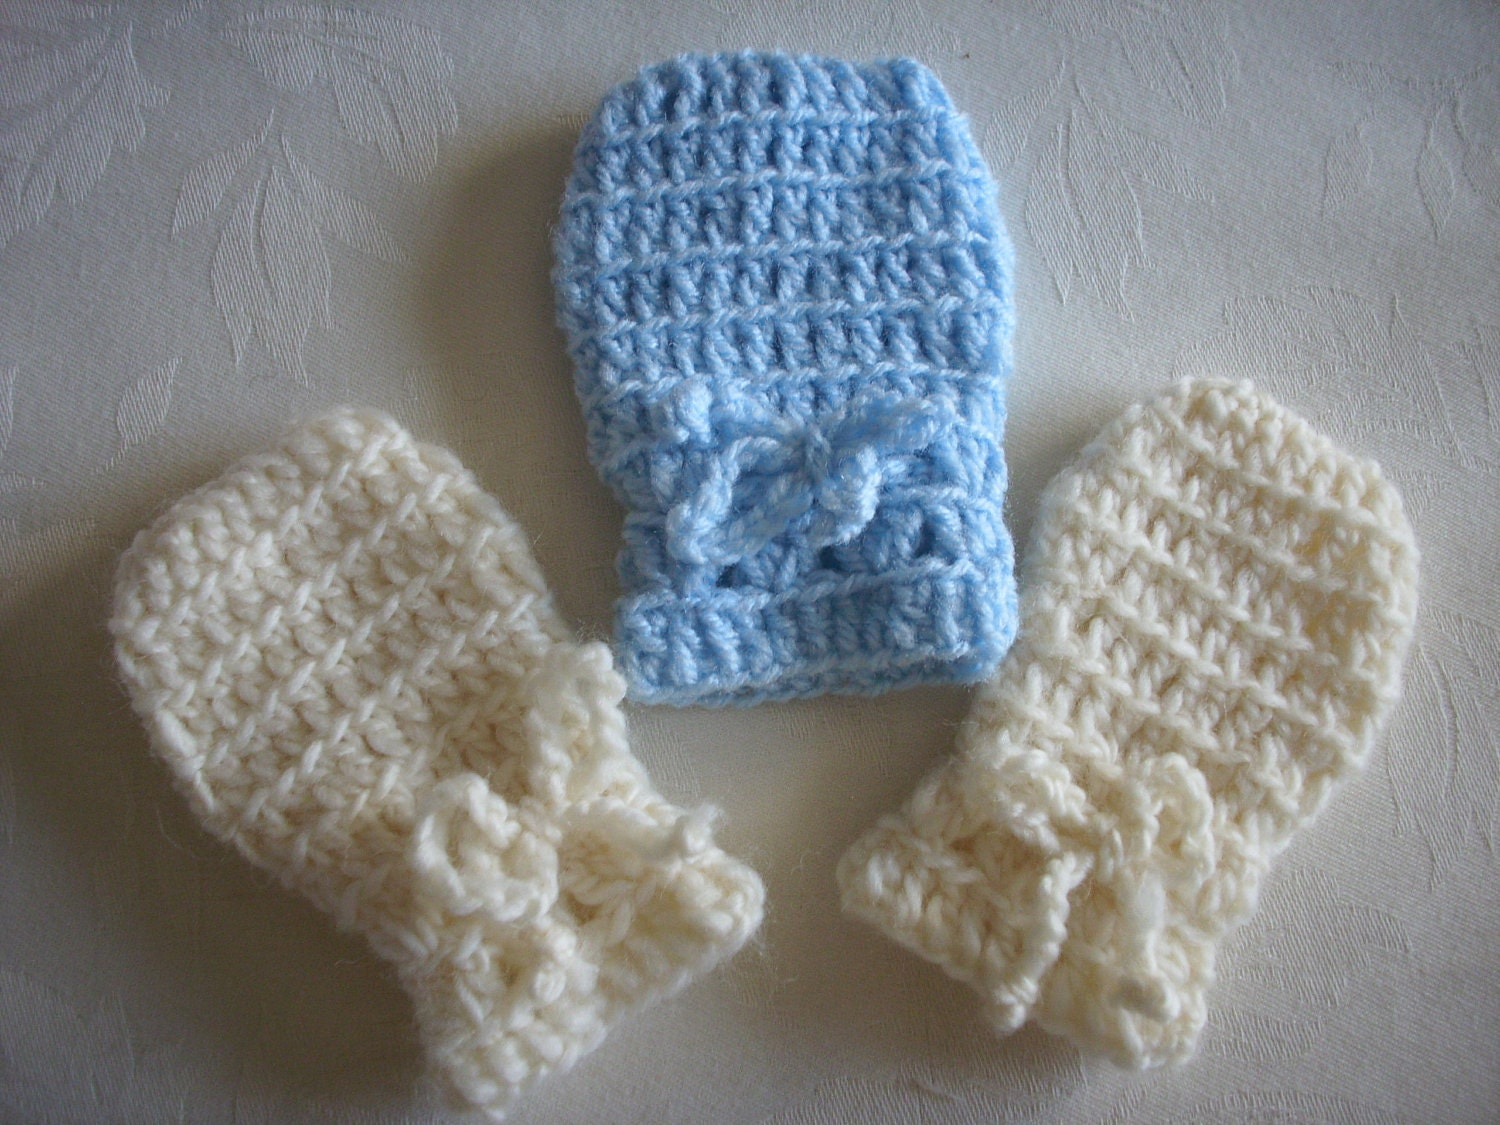 Crochet Pattern For Newborn Baby Sweater : PDF CROCHET PATTERN Baby Infant Thumbless Mittens Winter